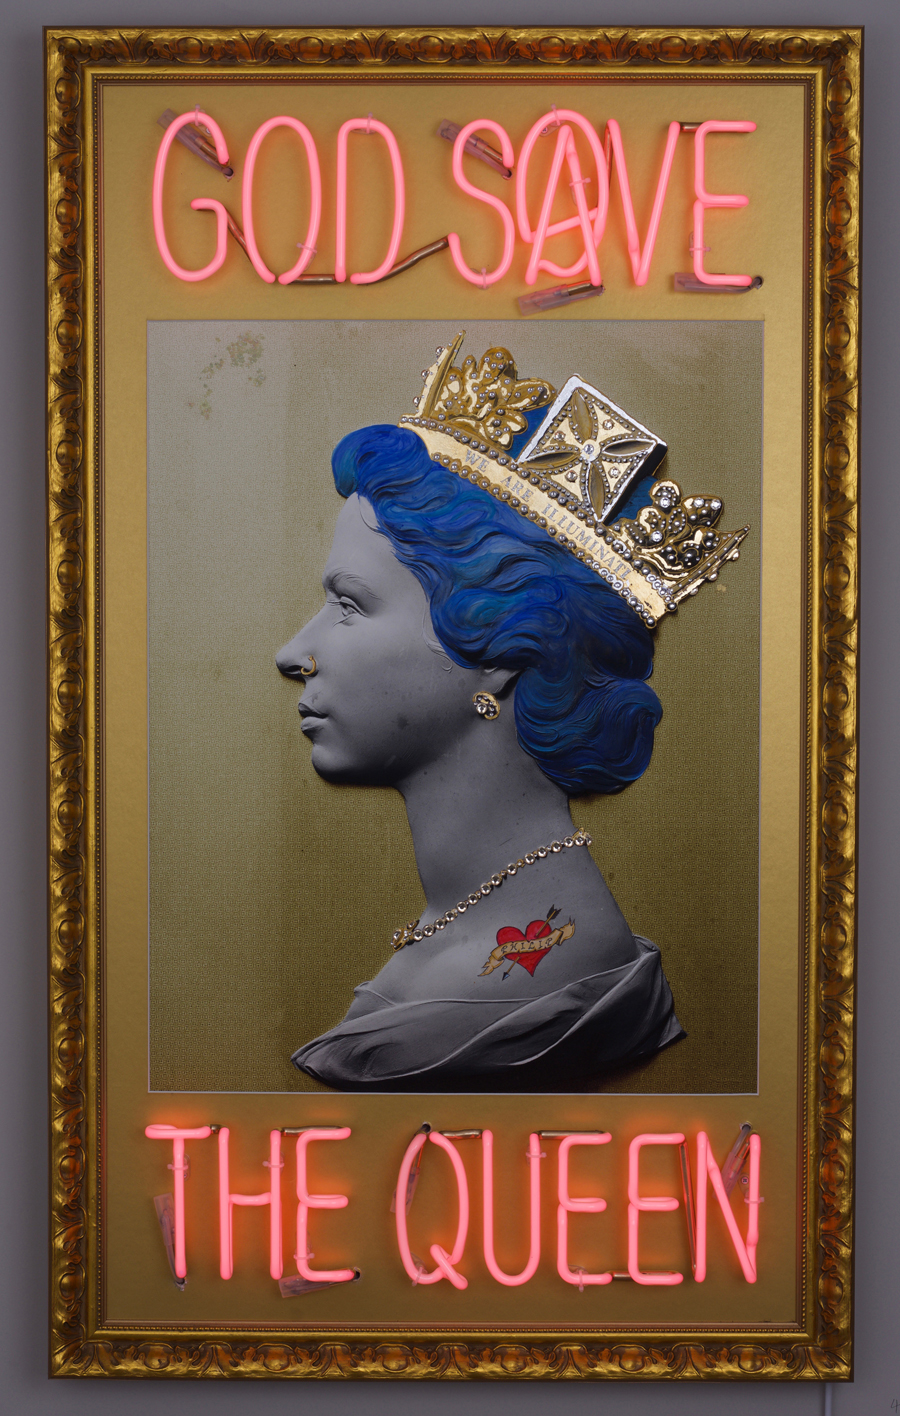 God Save The Queen. Illuminati. Herrick Gallery 2016.   herrickgallery.com